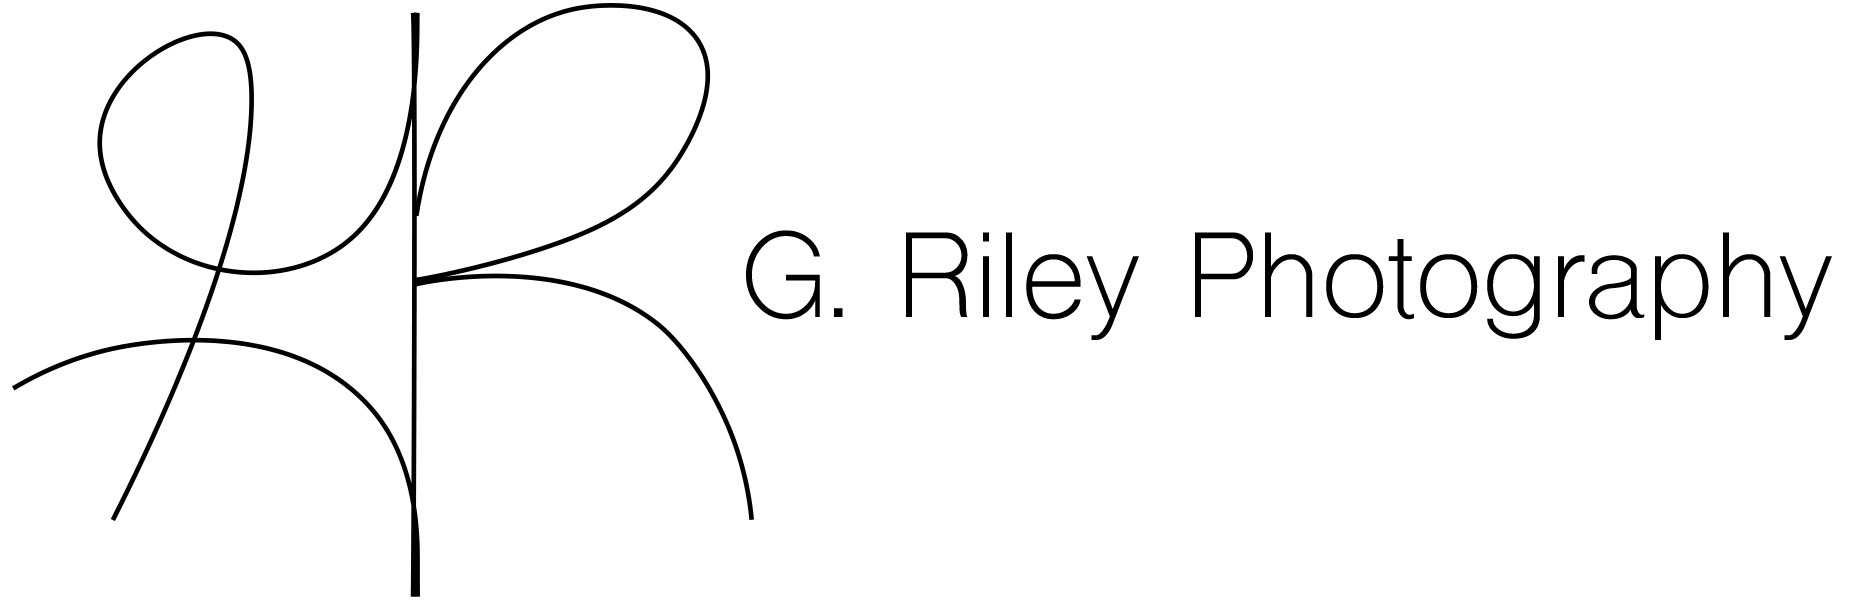 G. Riley Photography